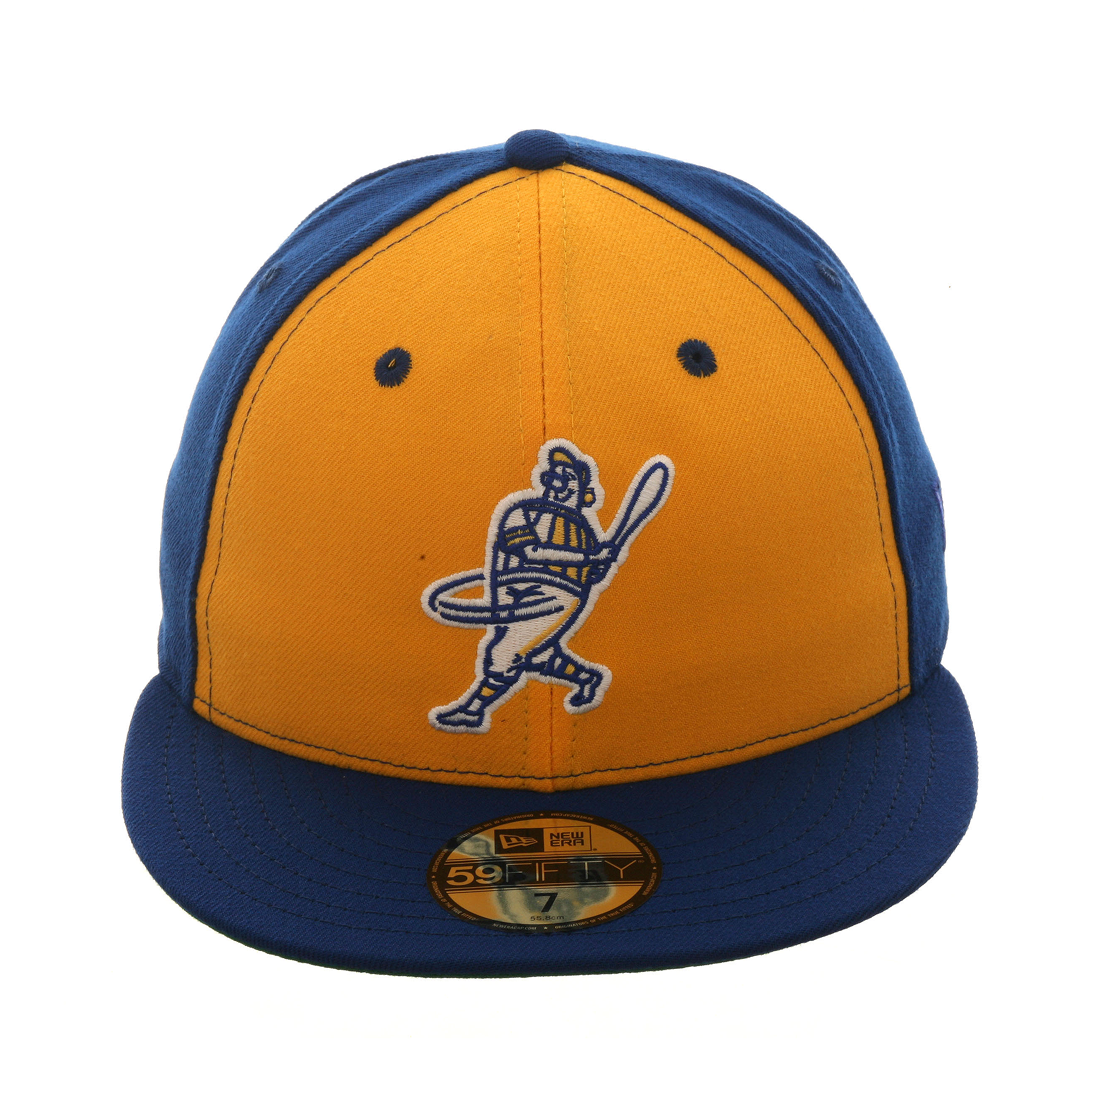 huge selection of e3e28 3e450 Exclusive New Era 59Fifty Milwaukee Brewers Barrel Man Rail Hat - Gold,  Royal